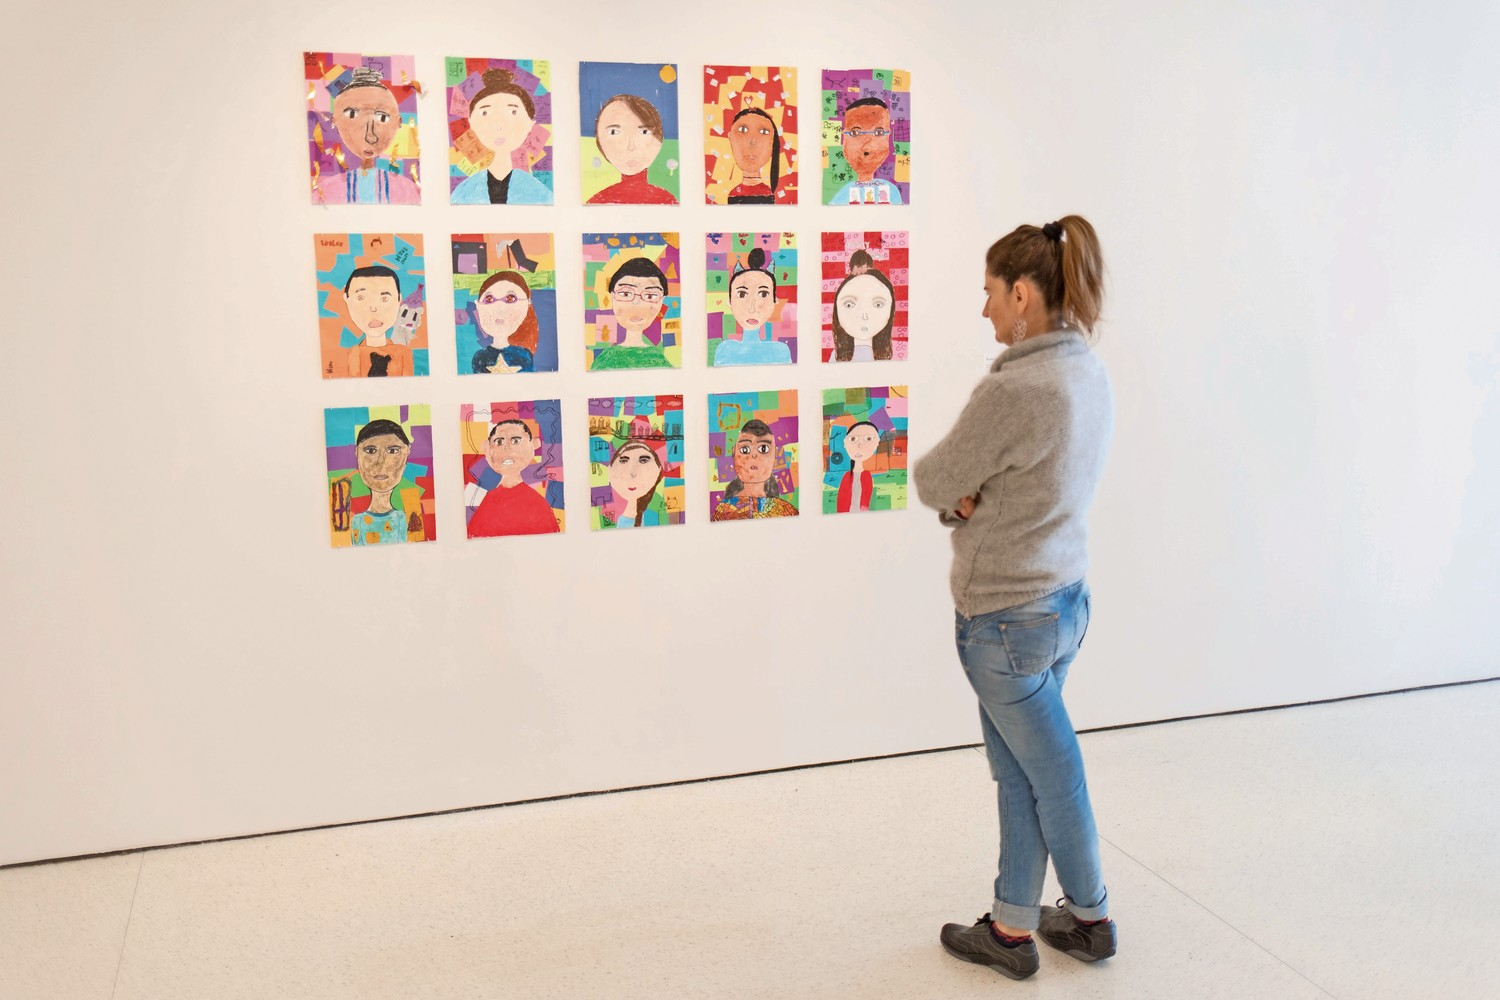 A visitor looks at 'Symbolic Self-Portraits' by fourth-grade students from P.S. 86 at the Guggenheim Museum.